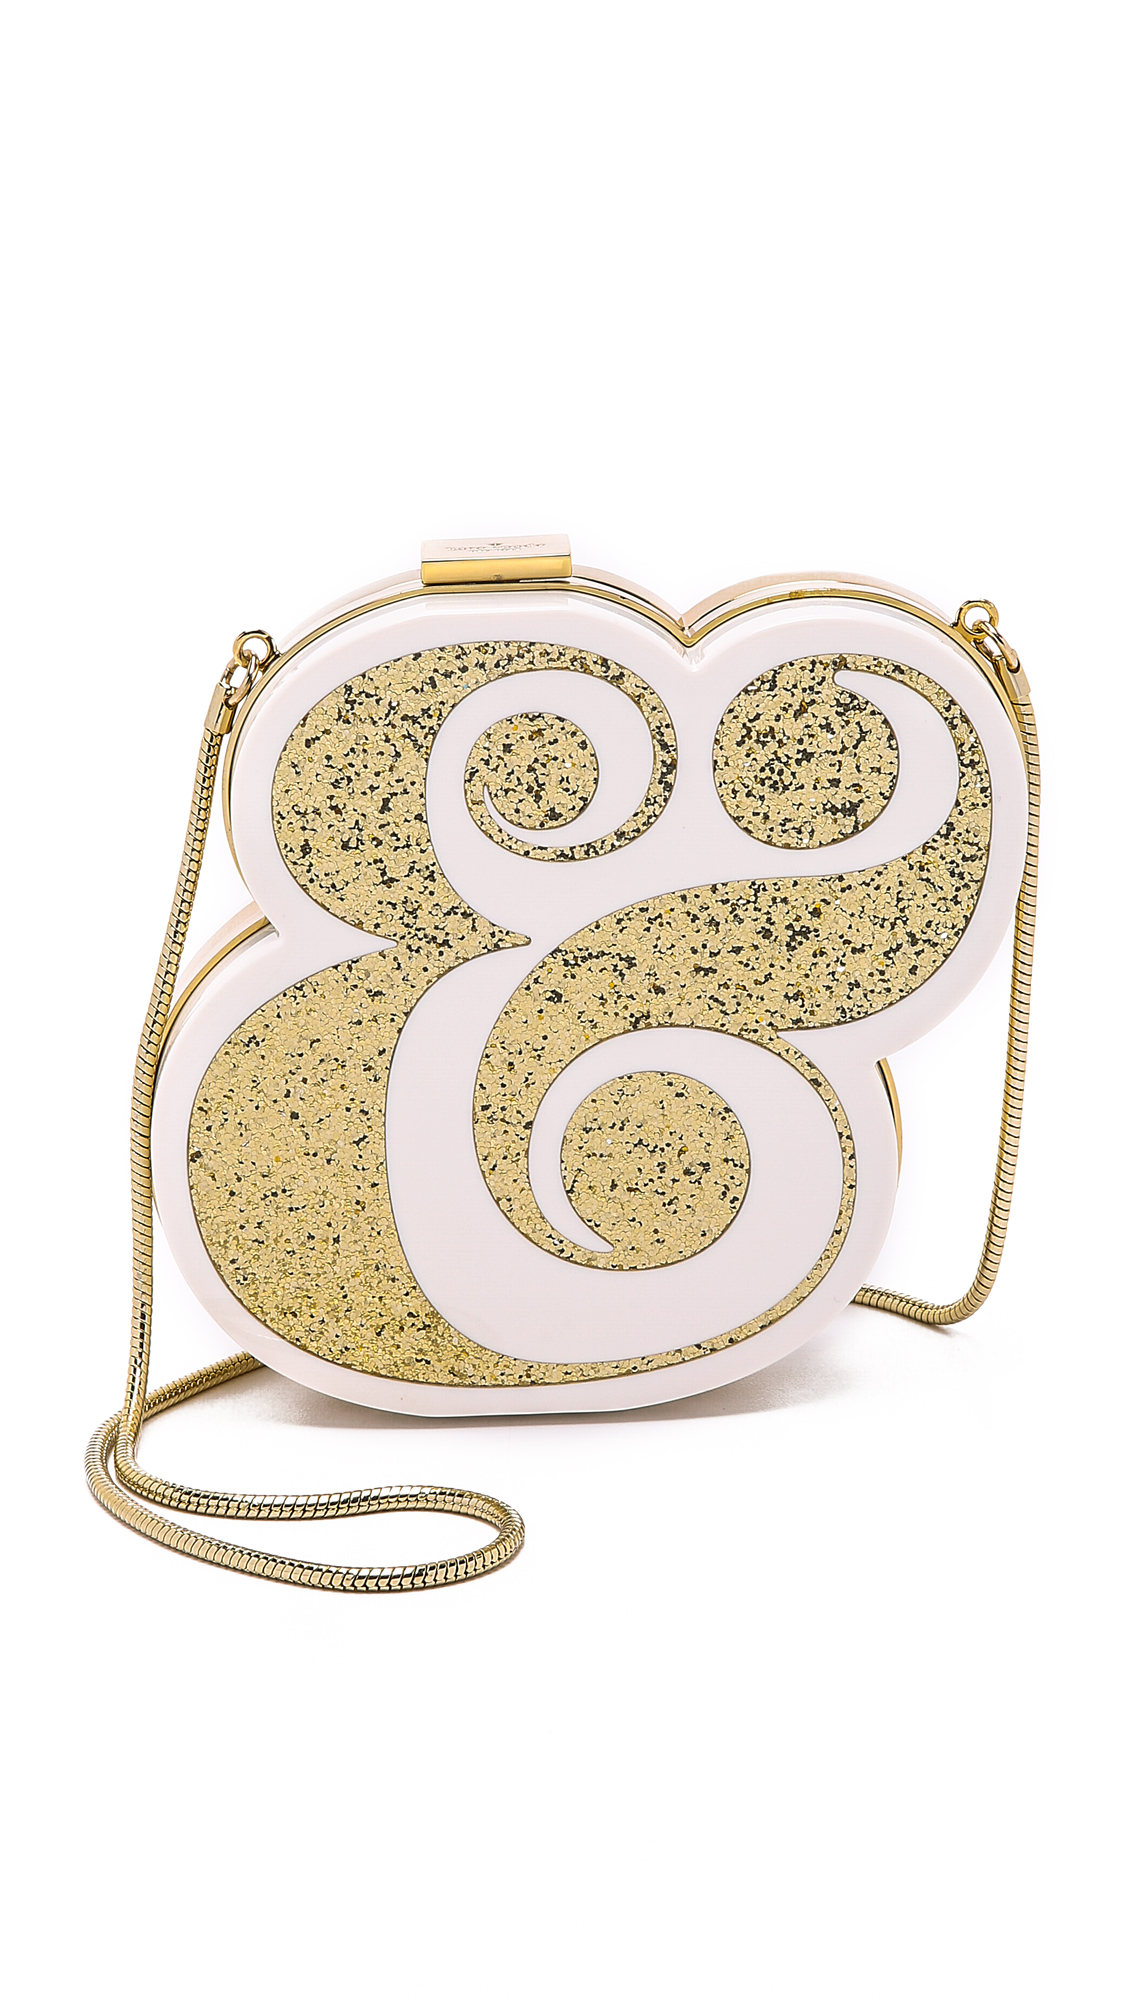 Glitter inlays add a glamorous touch to this glossy, modern Kate Spade New York clutch. The snake chain strap can be tucked inside. The lined interior is detailed with metallic jacquard wedding phrases. Hinged closure. Dust